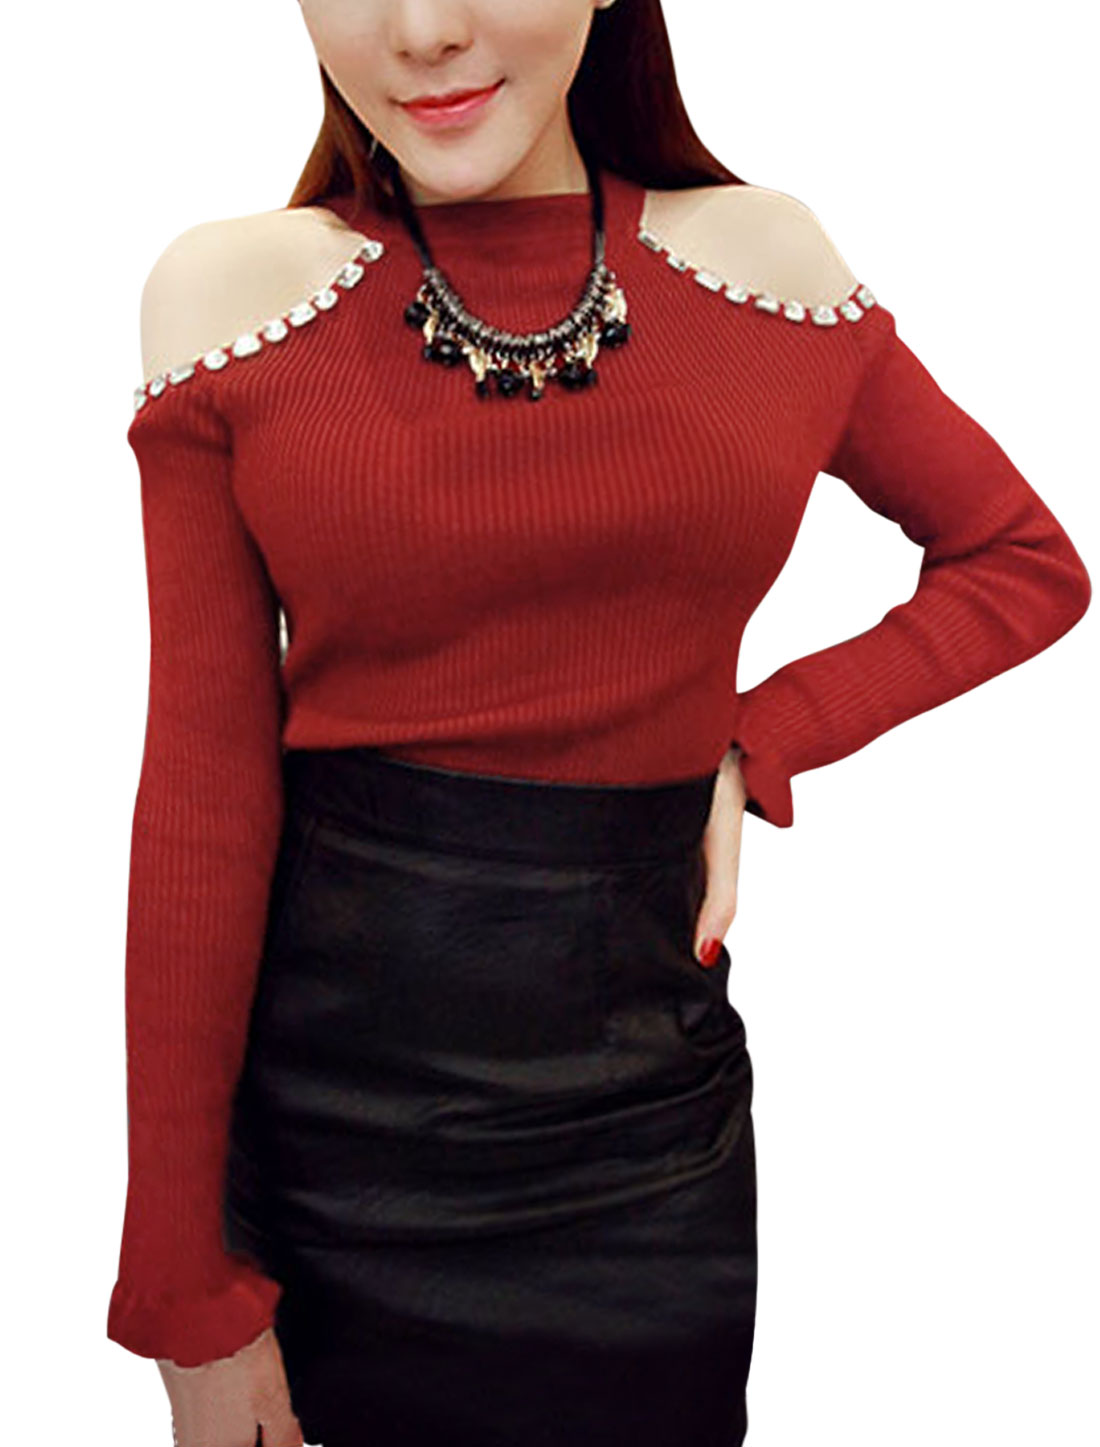 Stretchy Cut Out Shoulder Slim Fit Red Knit Shirt for Women S